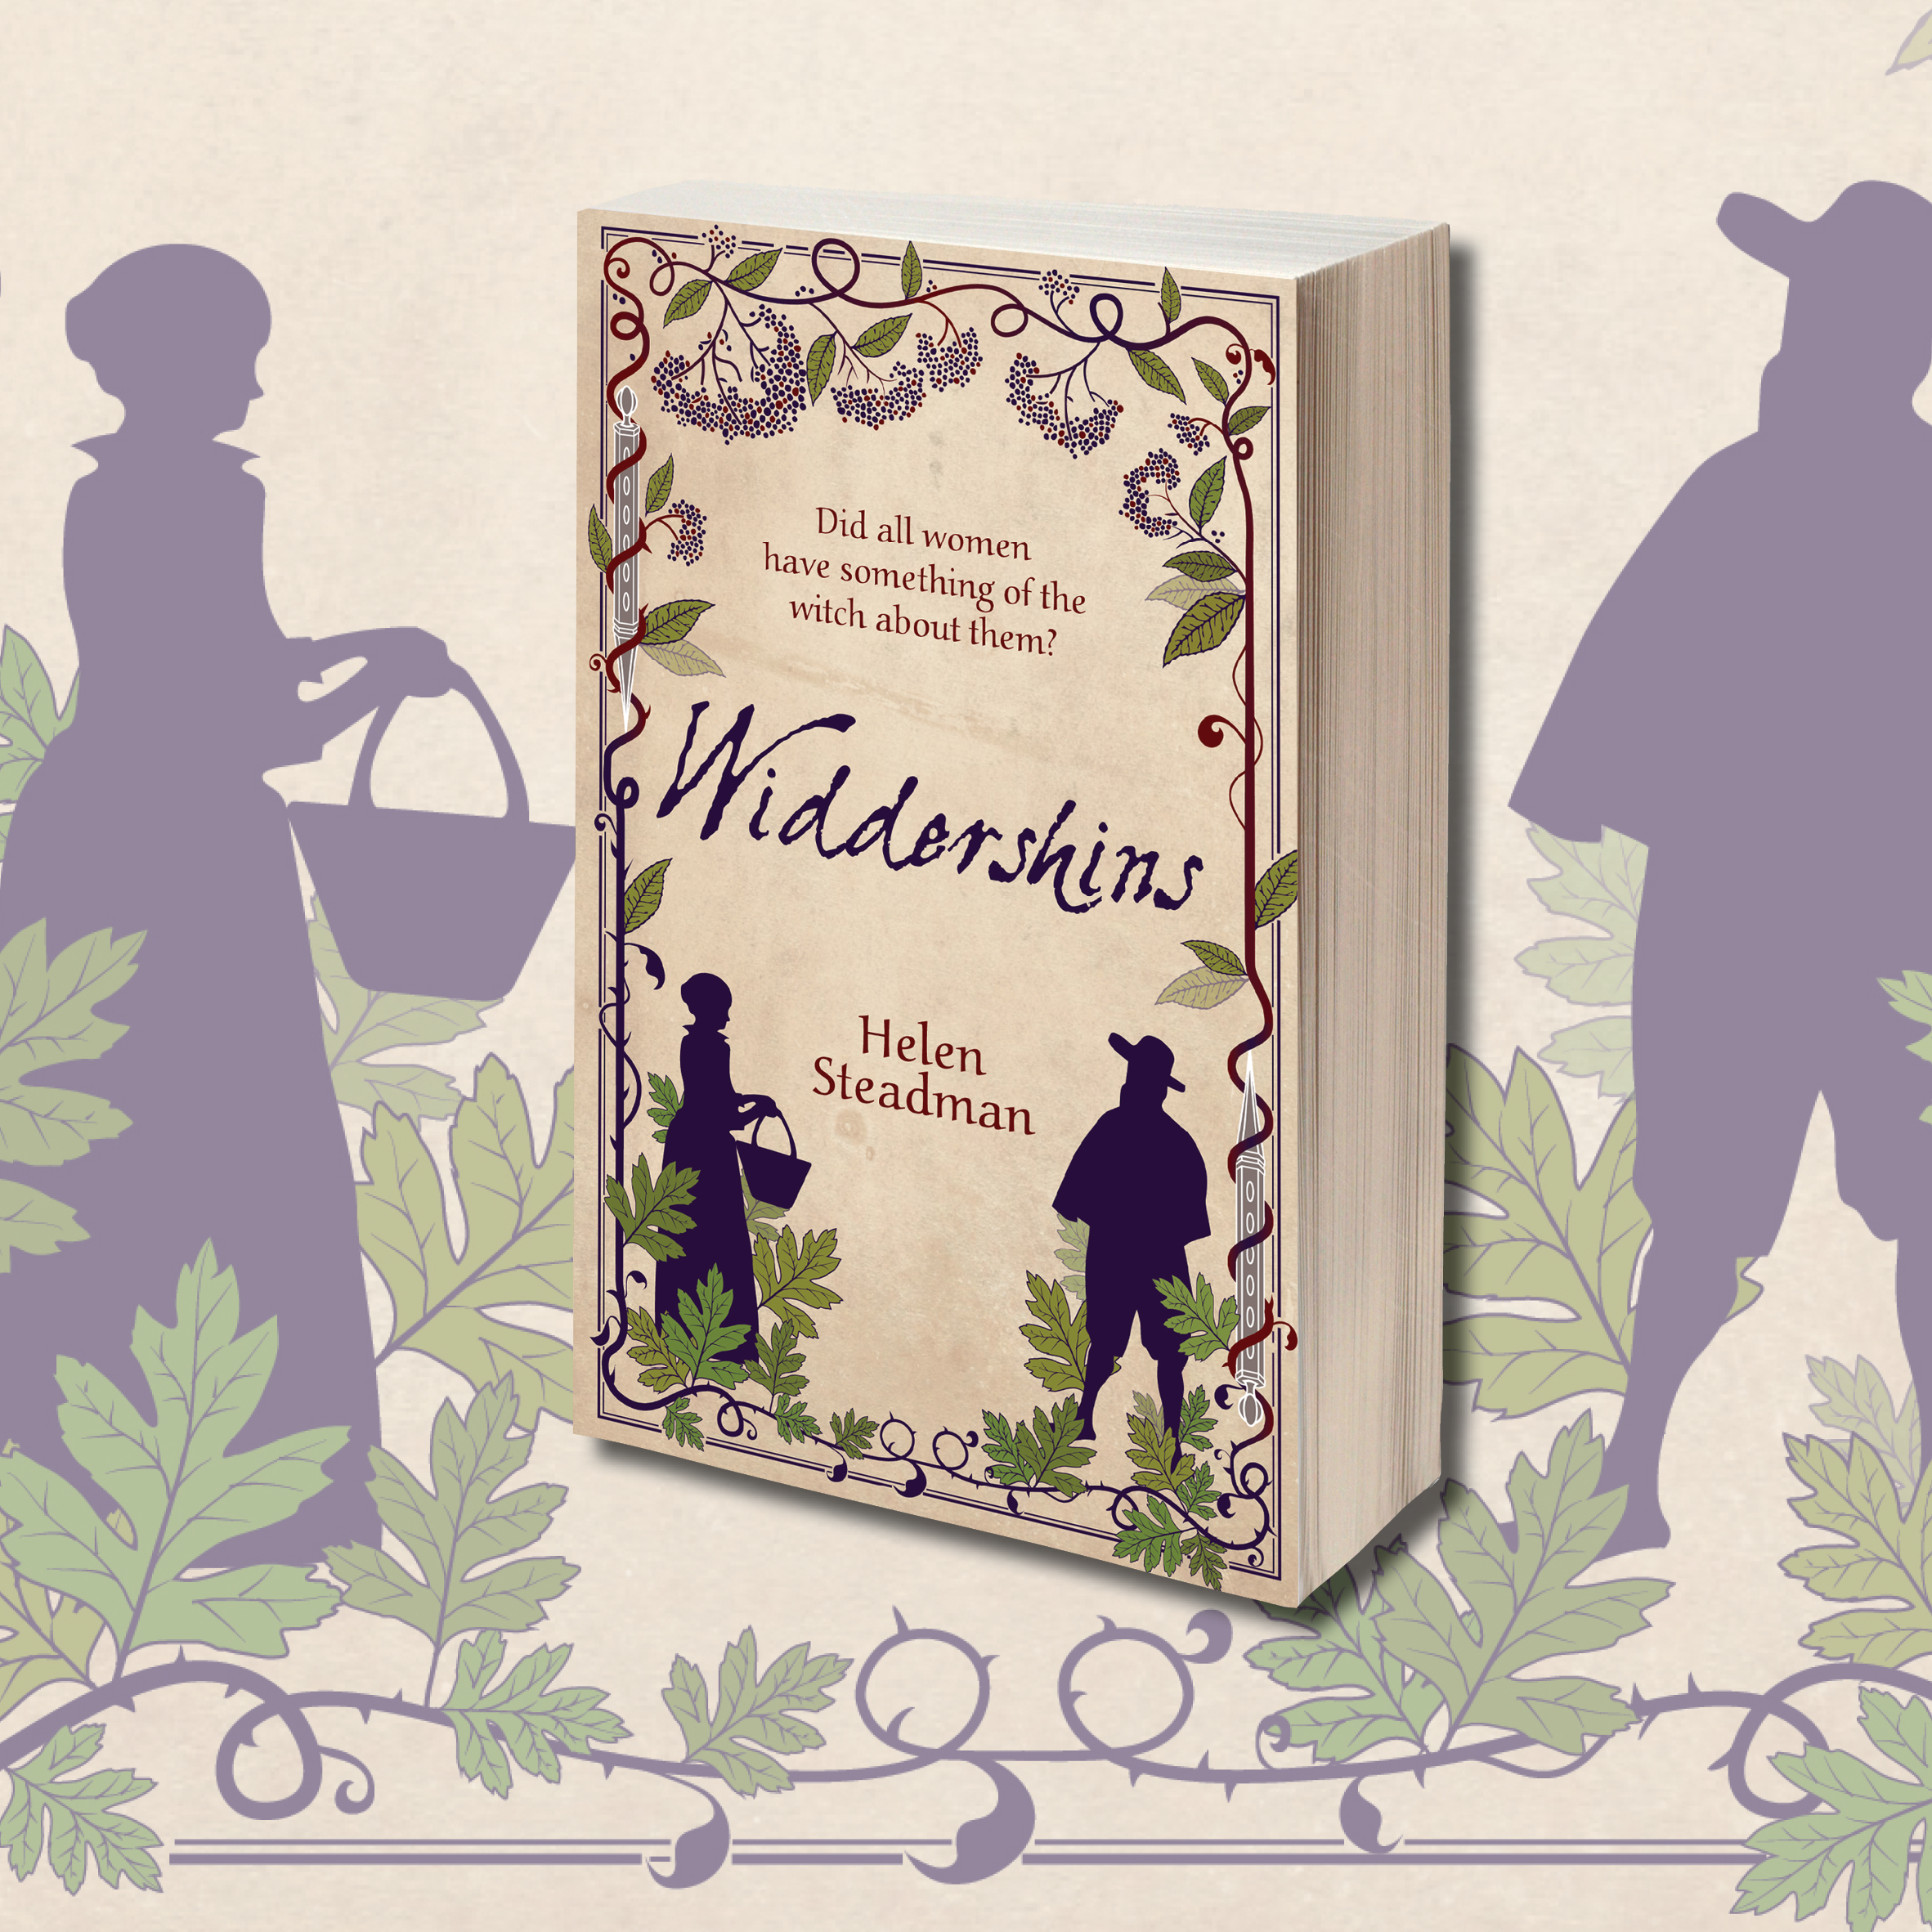 Cover of Widdershins against a backdrop showing the silhouettes of Jane Chandler and John Sharpe.